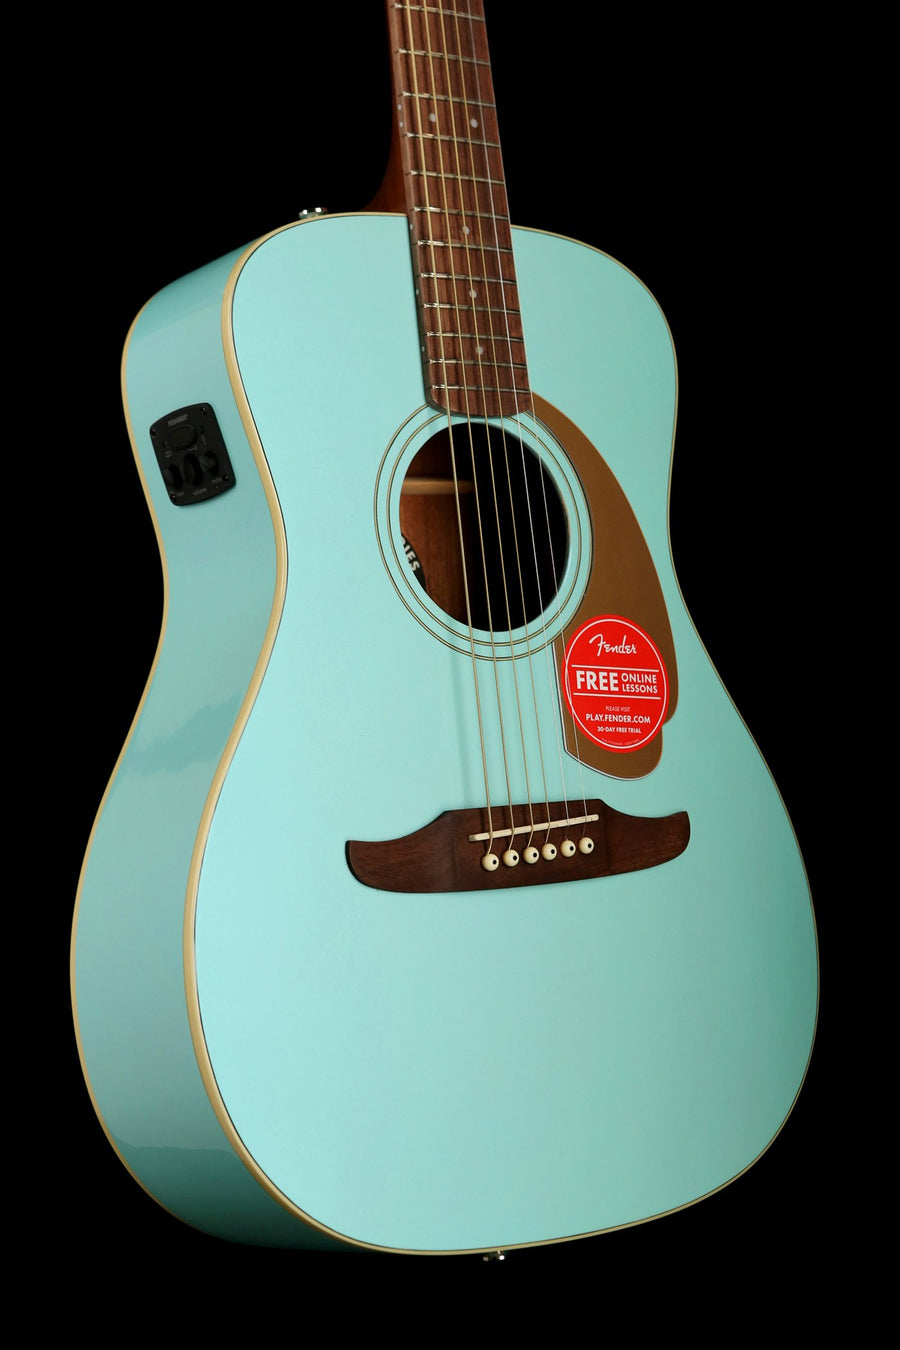 Fender California Player Malibu Acoustic Electric Guitar - acousticcentre